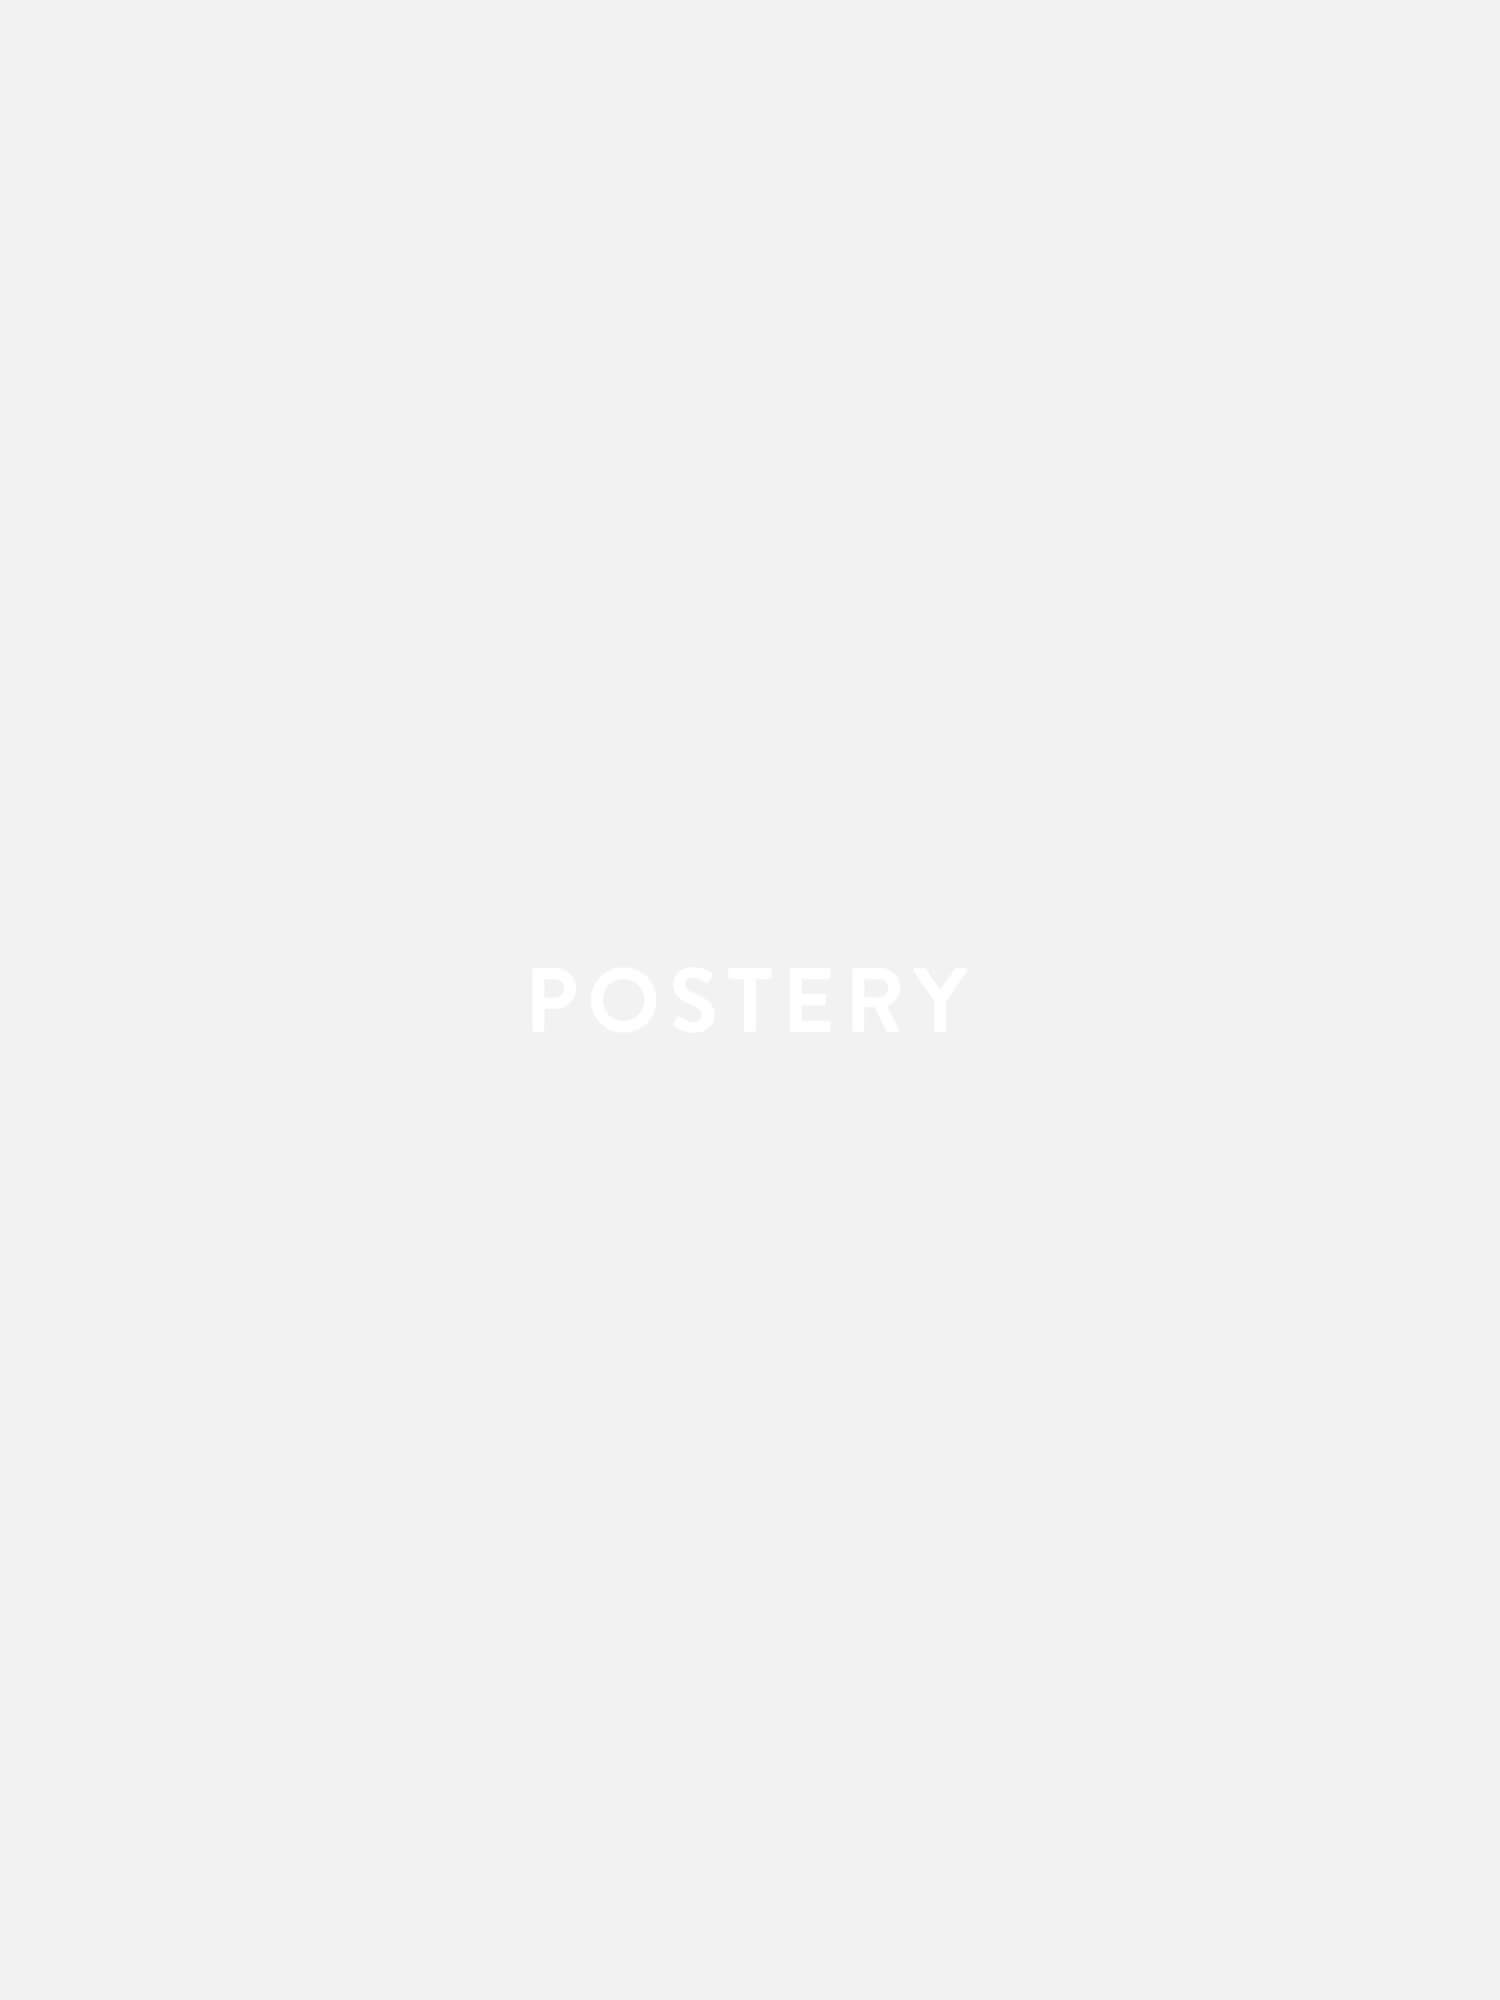 Matisse Cutout Pink Orange Poster